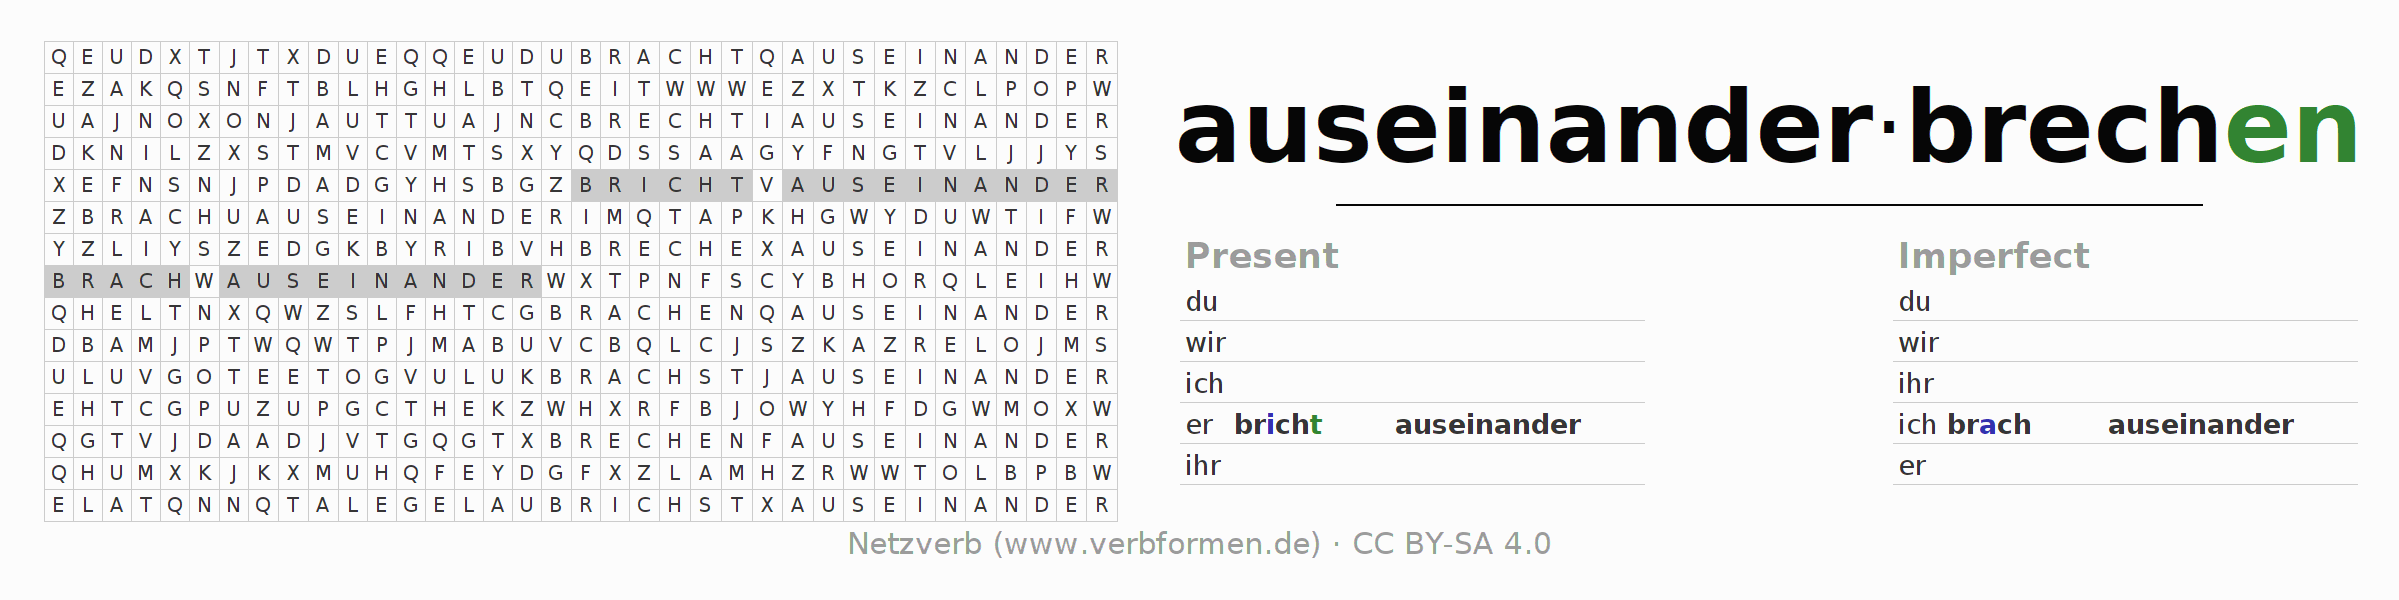 Word search puzzle for the conjugation of the verb auseinanderbrechen (hat)